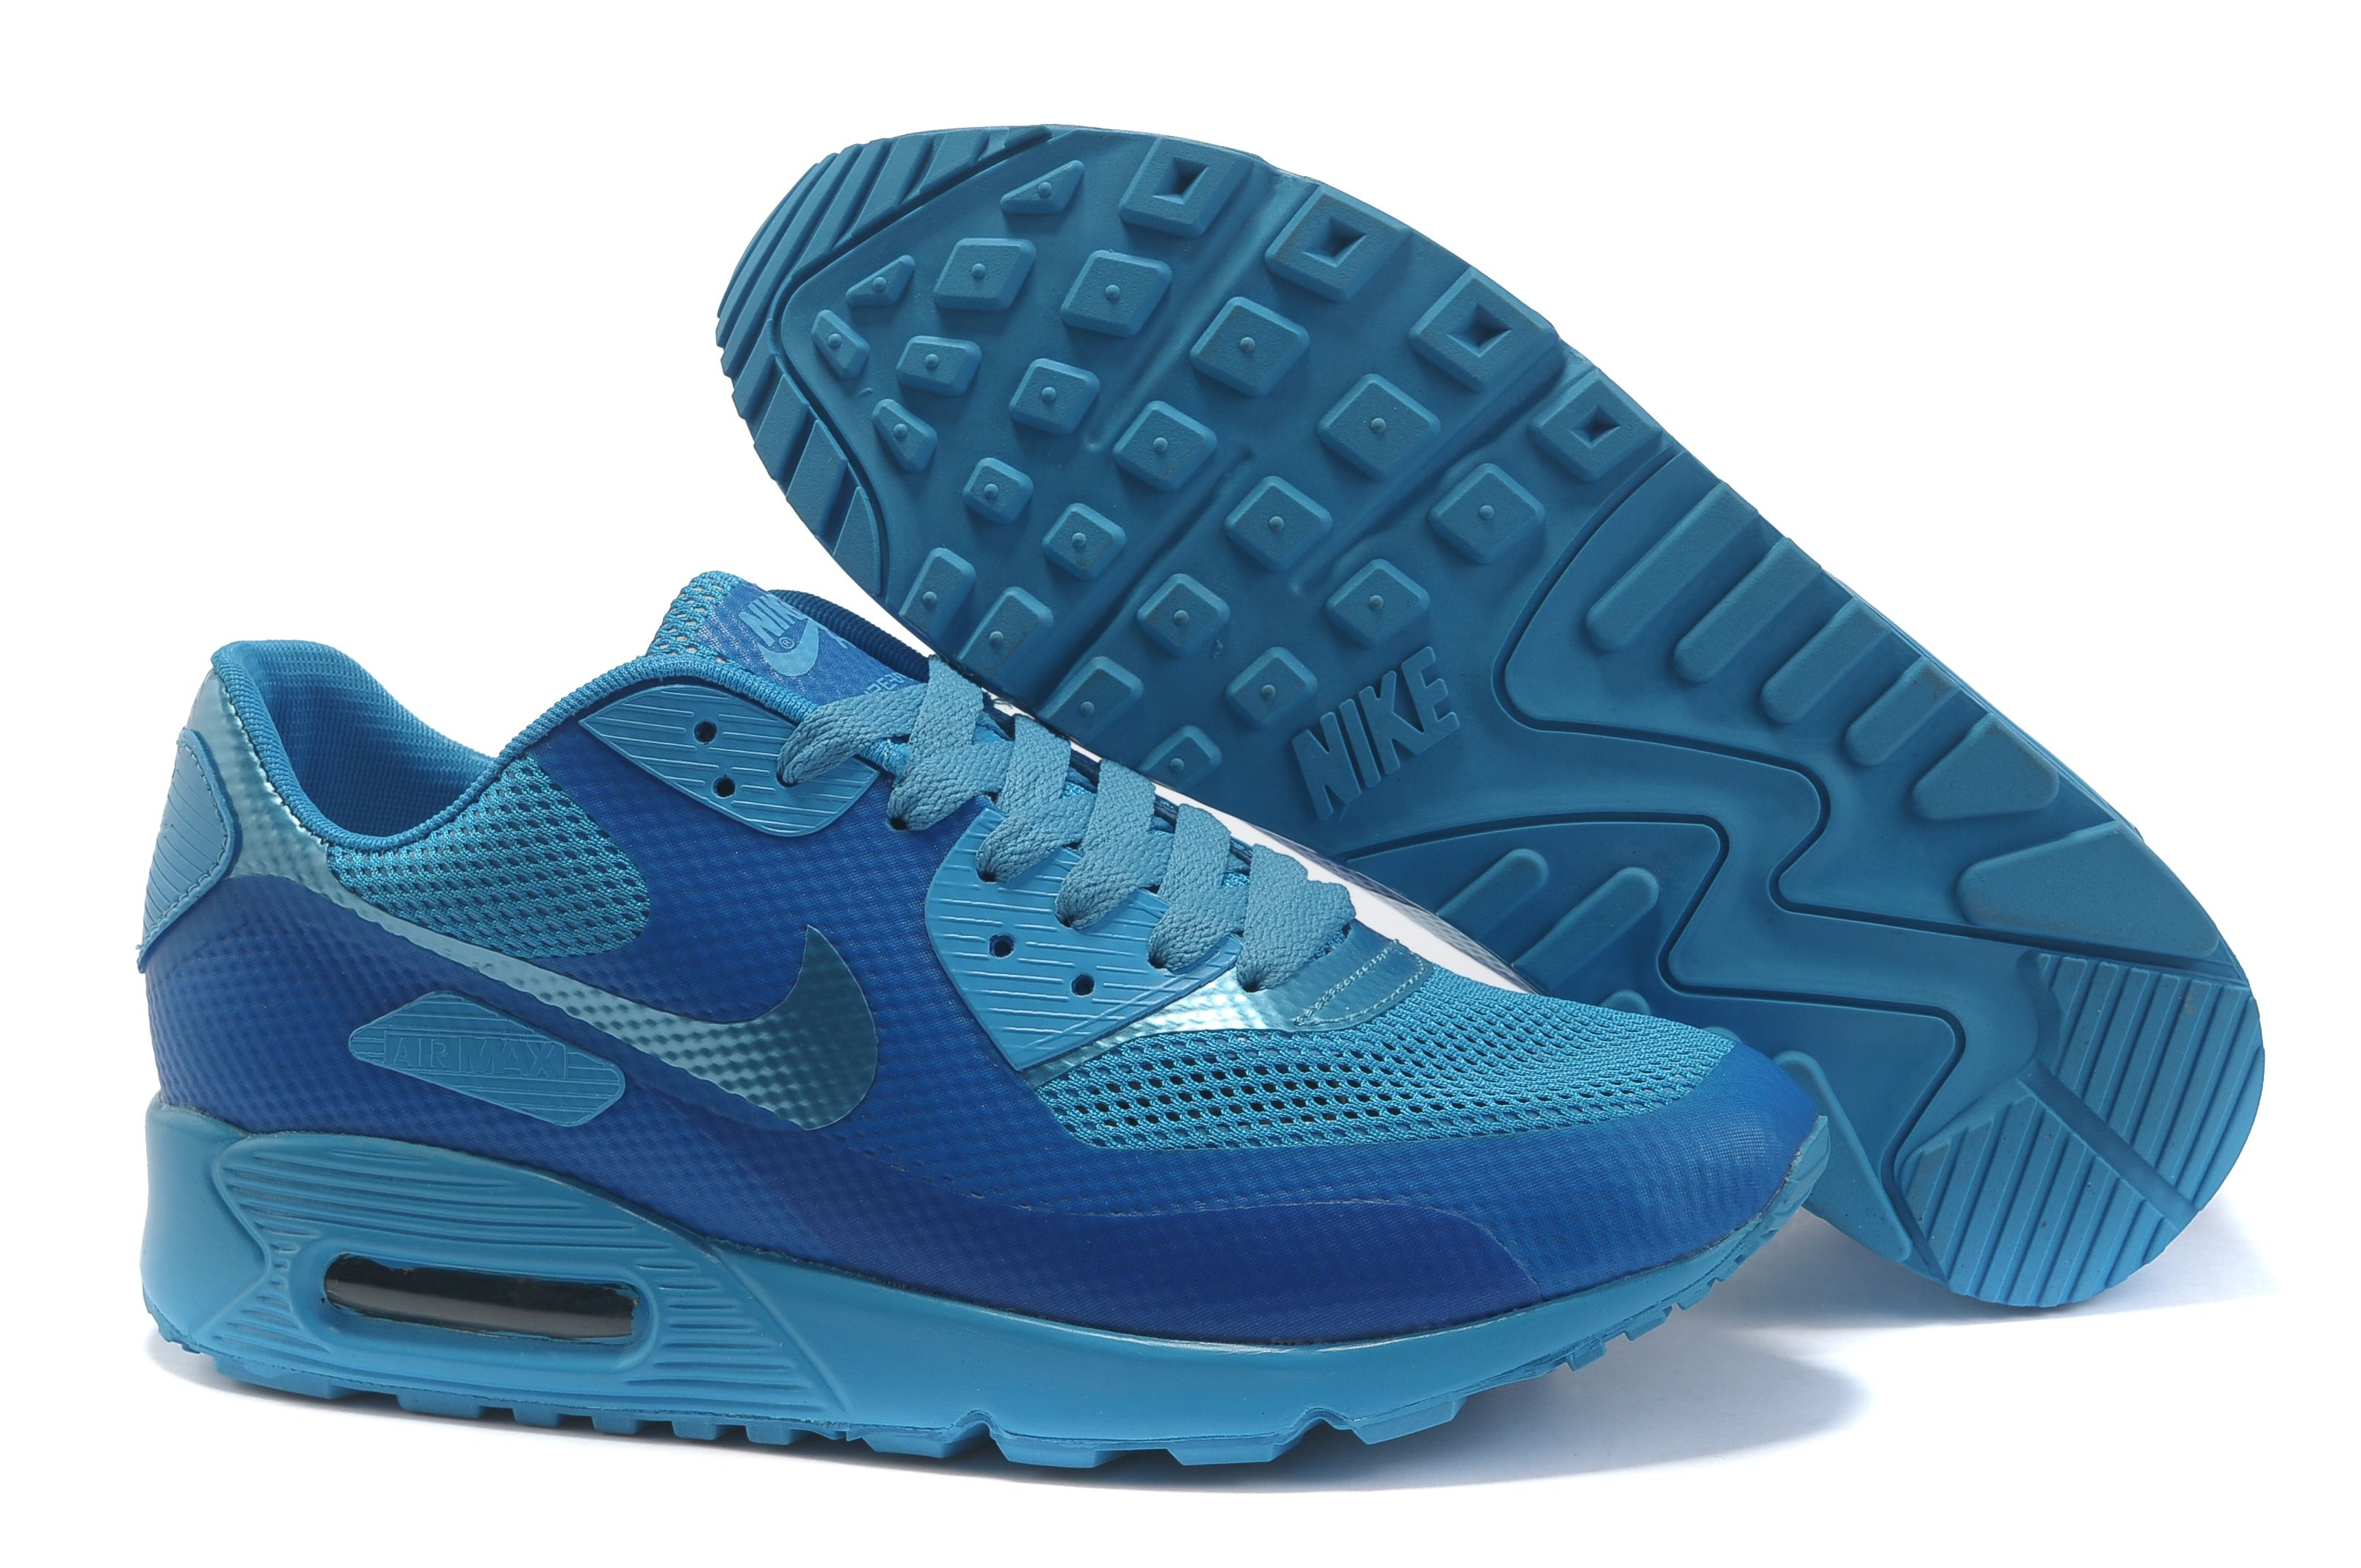 meet dc499 d093c Now Buy Discount Nike Air Max 90 Hyperfuse Womens Deepblue Blue Save Up  From Outlet Store at Footlocker.